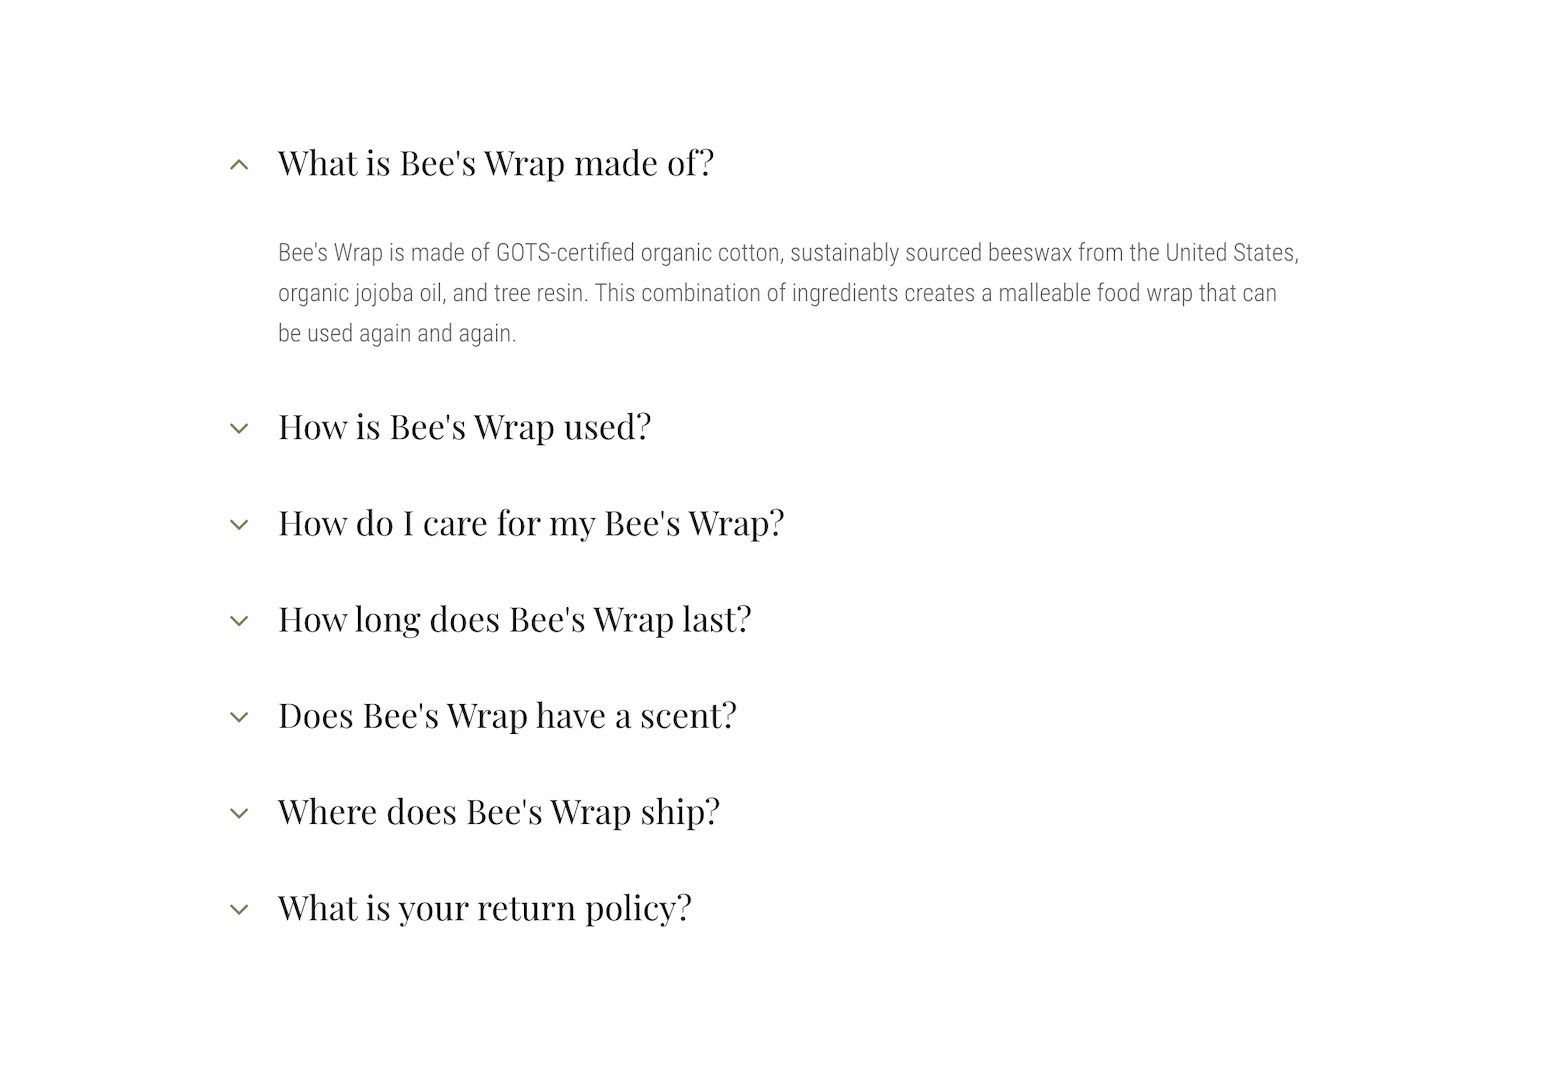 faq_page_with_accordion_feature_for_questions_and_answers.png